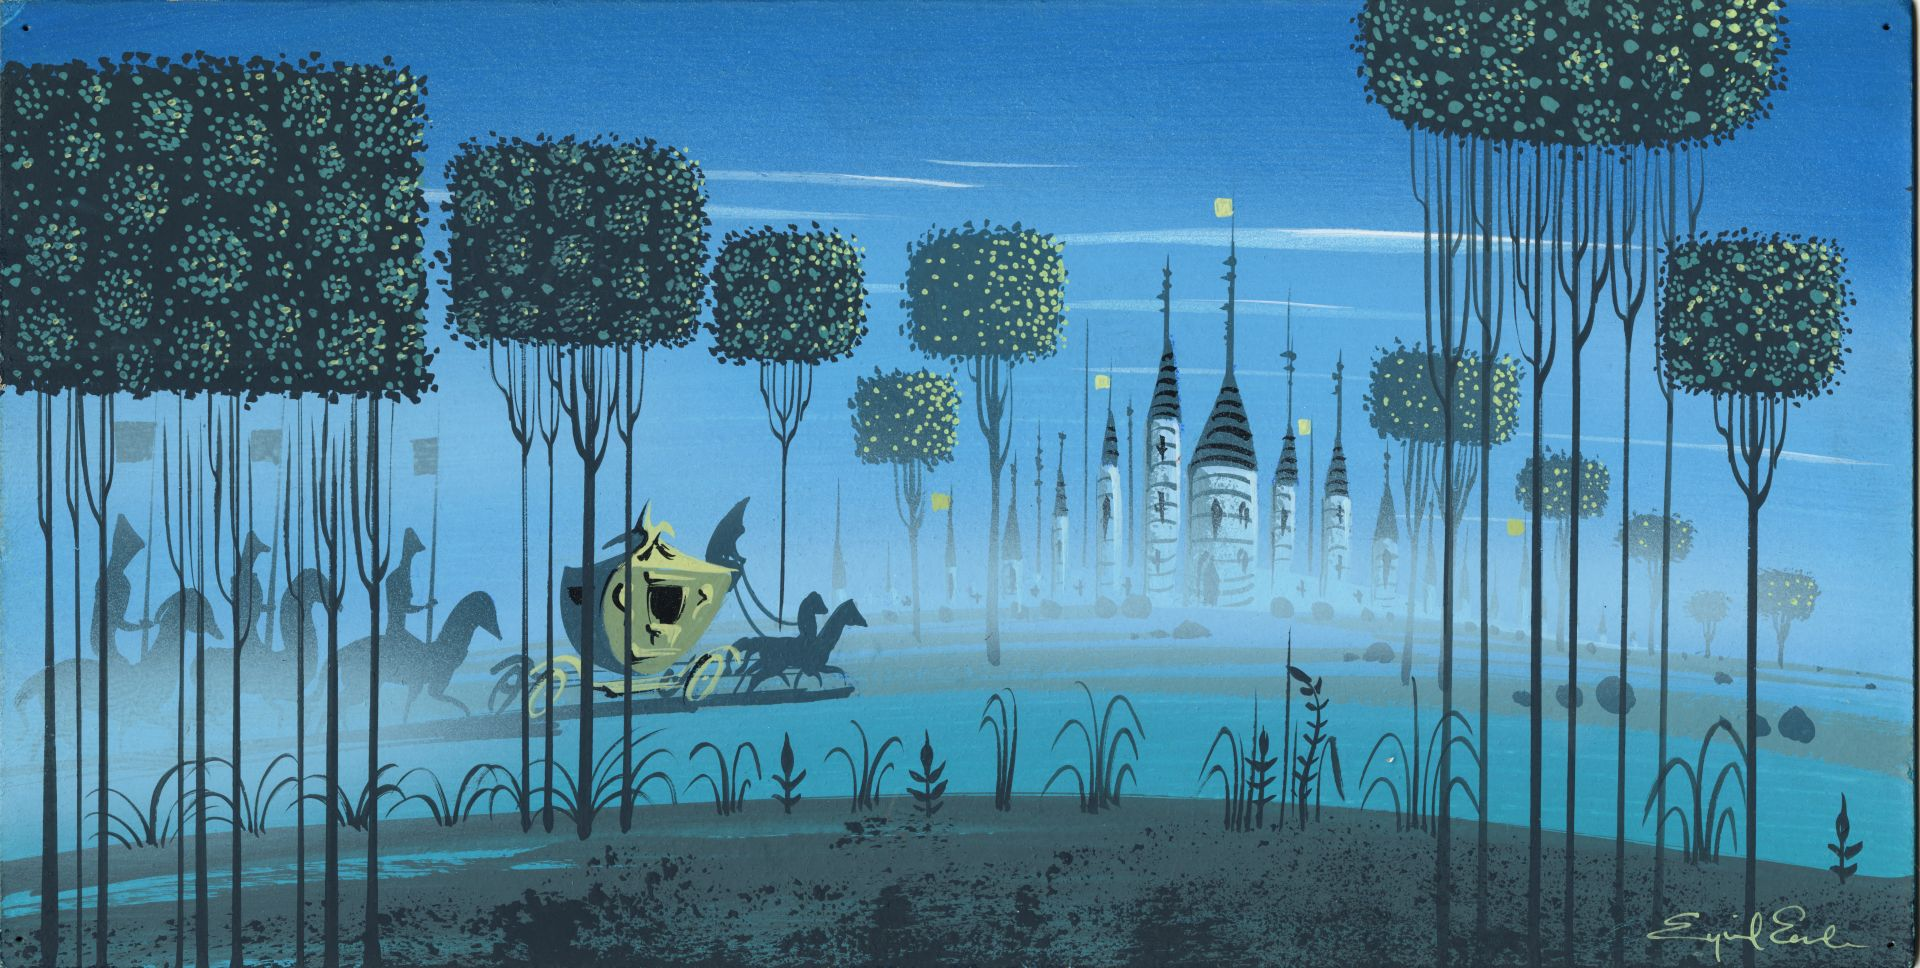 3-sleeping-beauty-concept-painting-eyvind-earle-c-1959-collection-of-the-walt-disney-family-foundation-c-disney-1.jpg